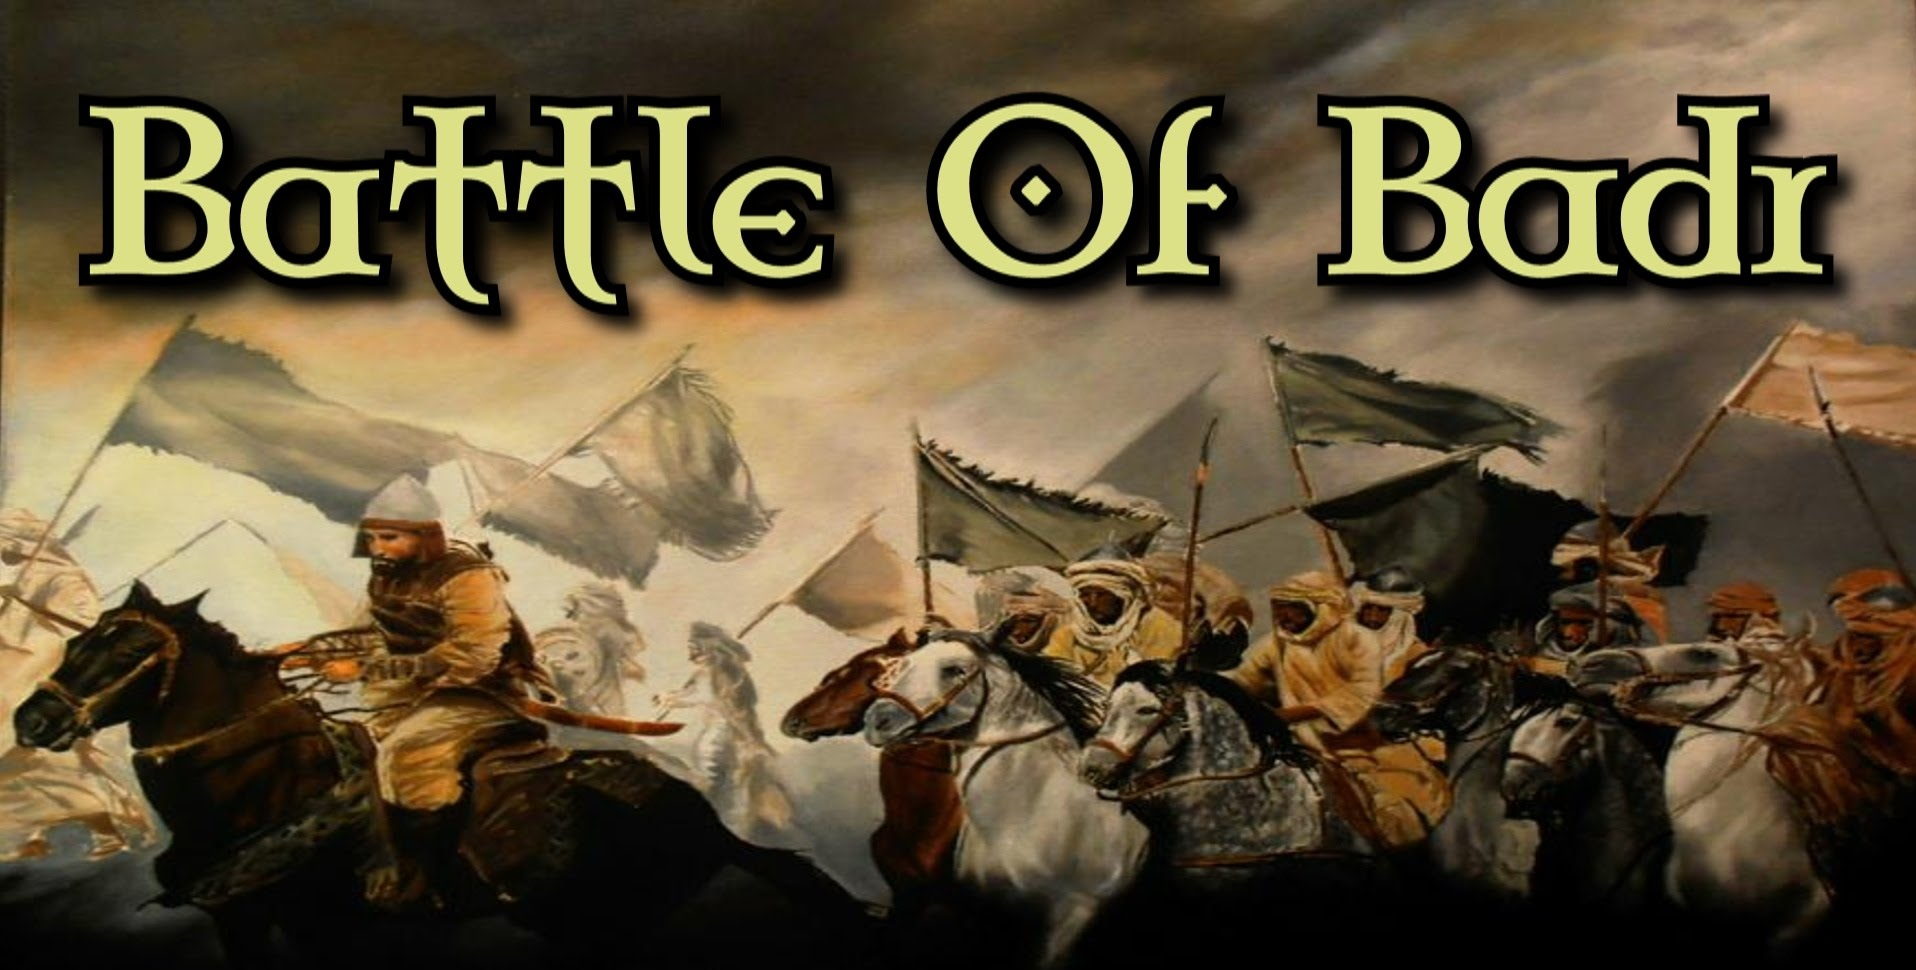 battle of badr In the thick of the battle, the prophet prayed to allah in surat-ul anfal  to read  and write the battle of badr strengthened the faith of the muslims.